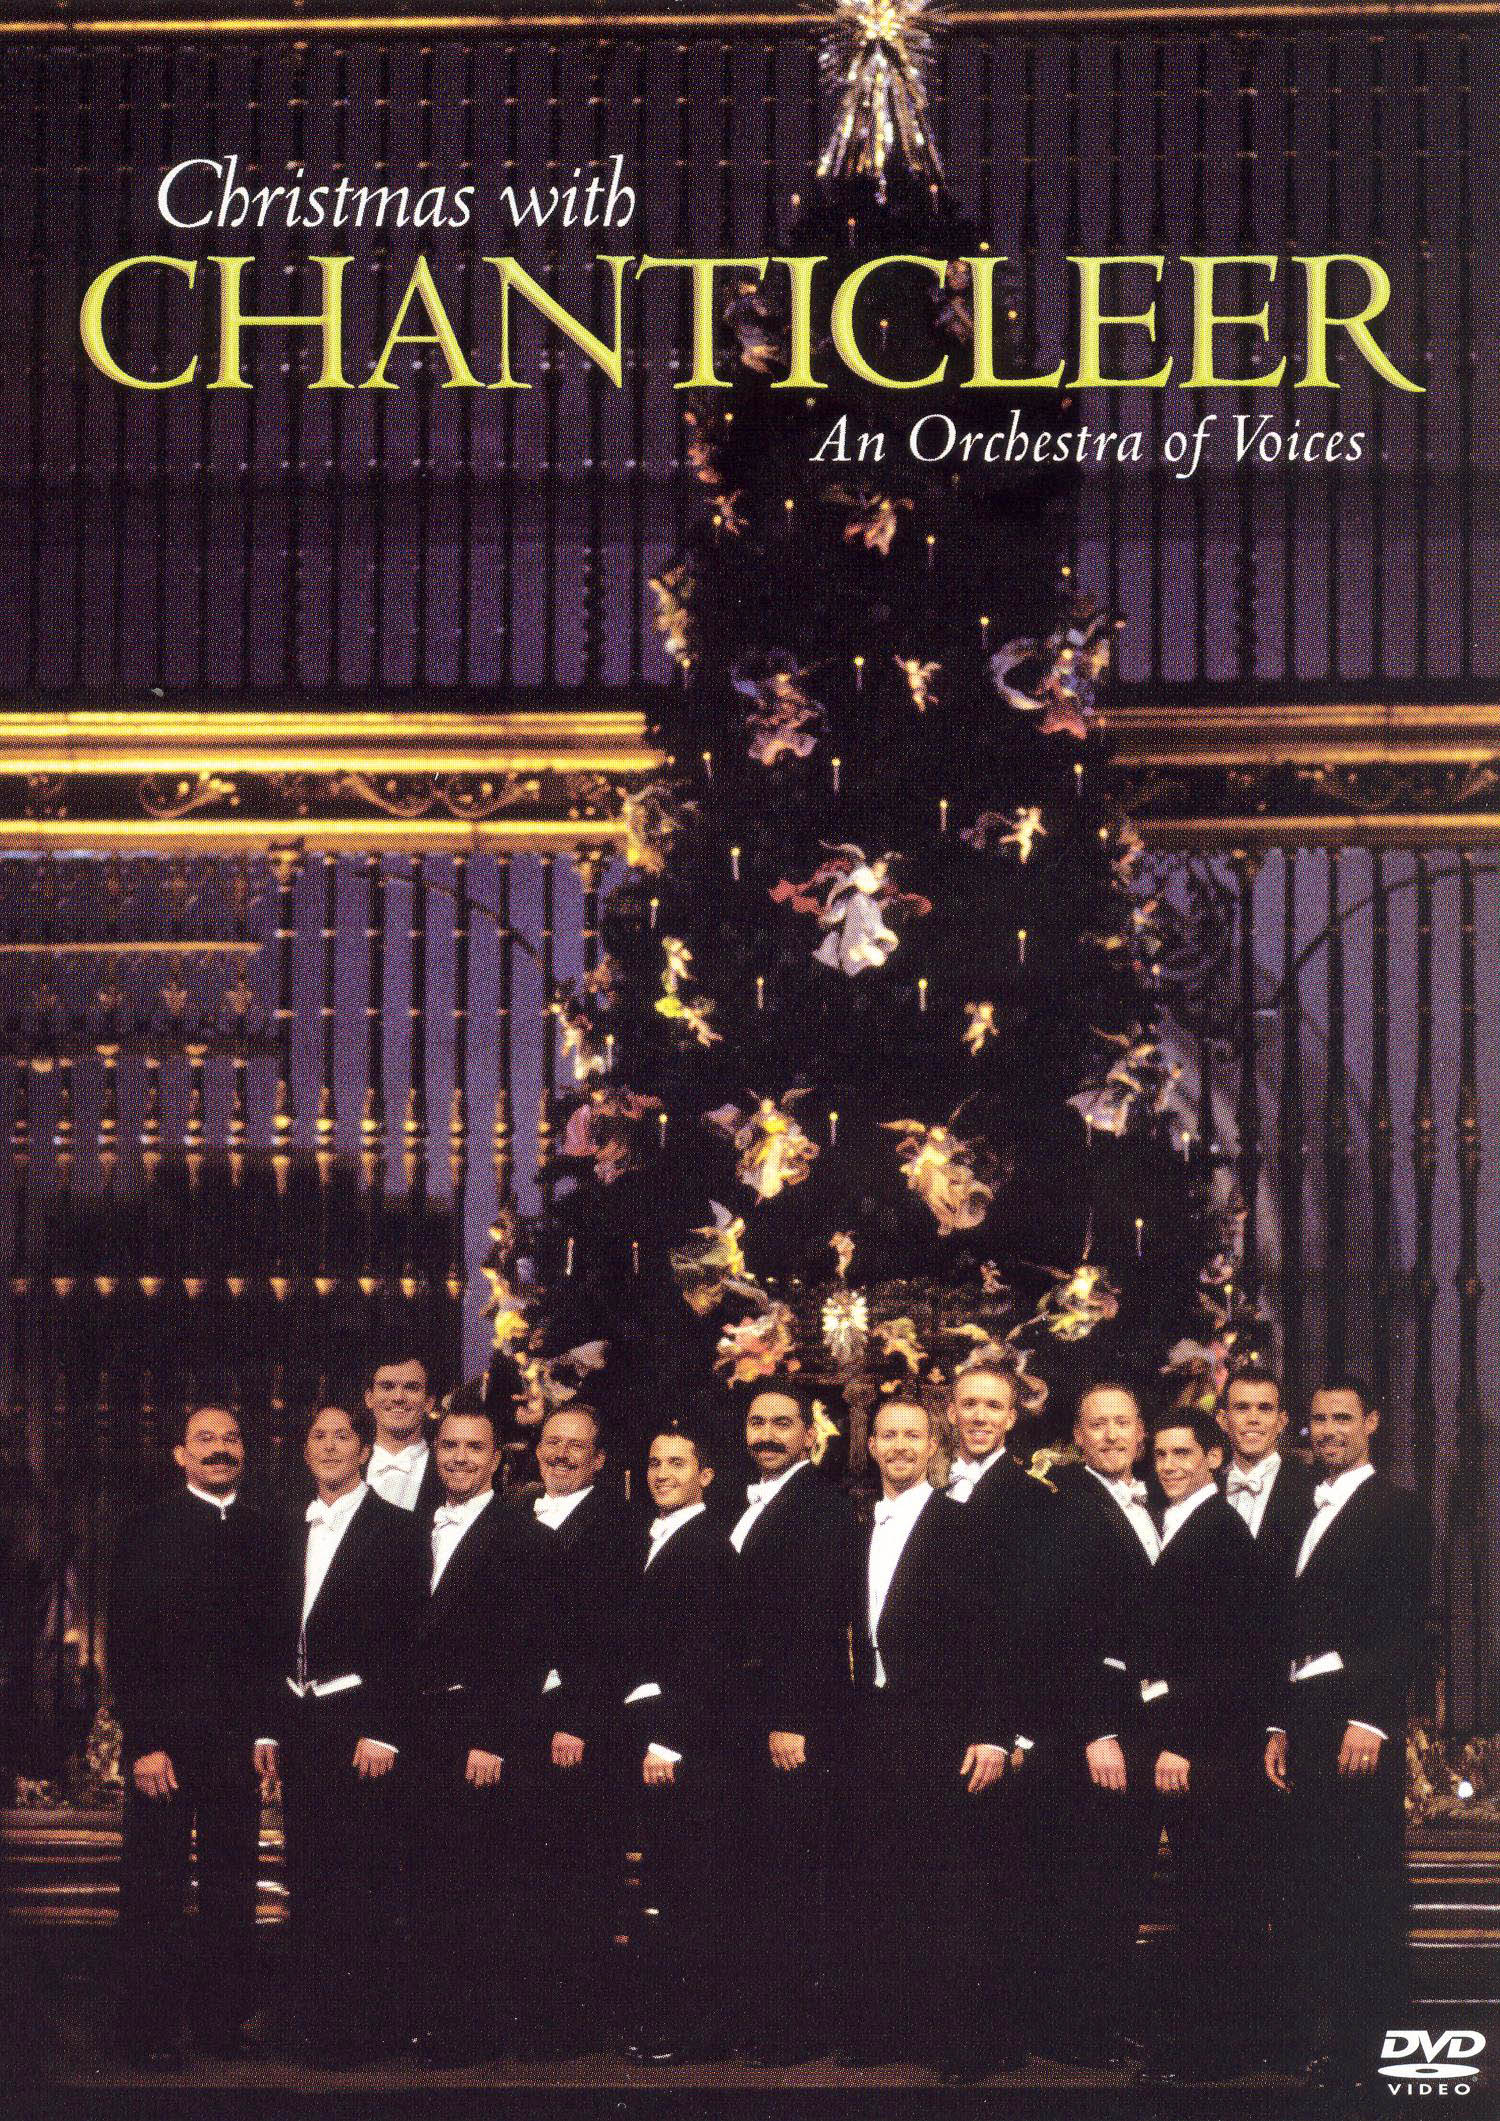 Christmas With Chanticleer: An Orchestra of Voices